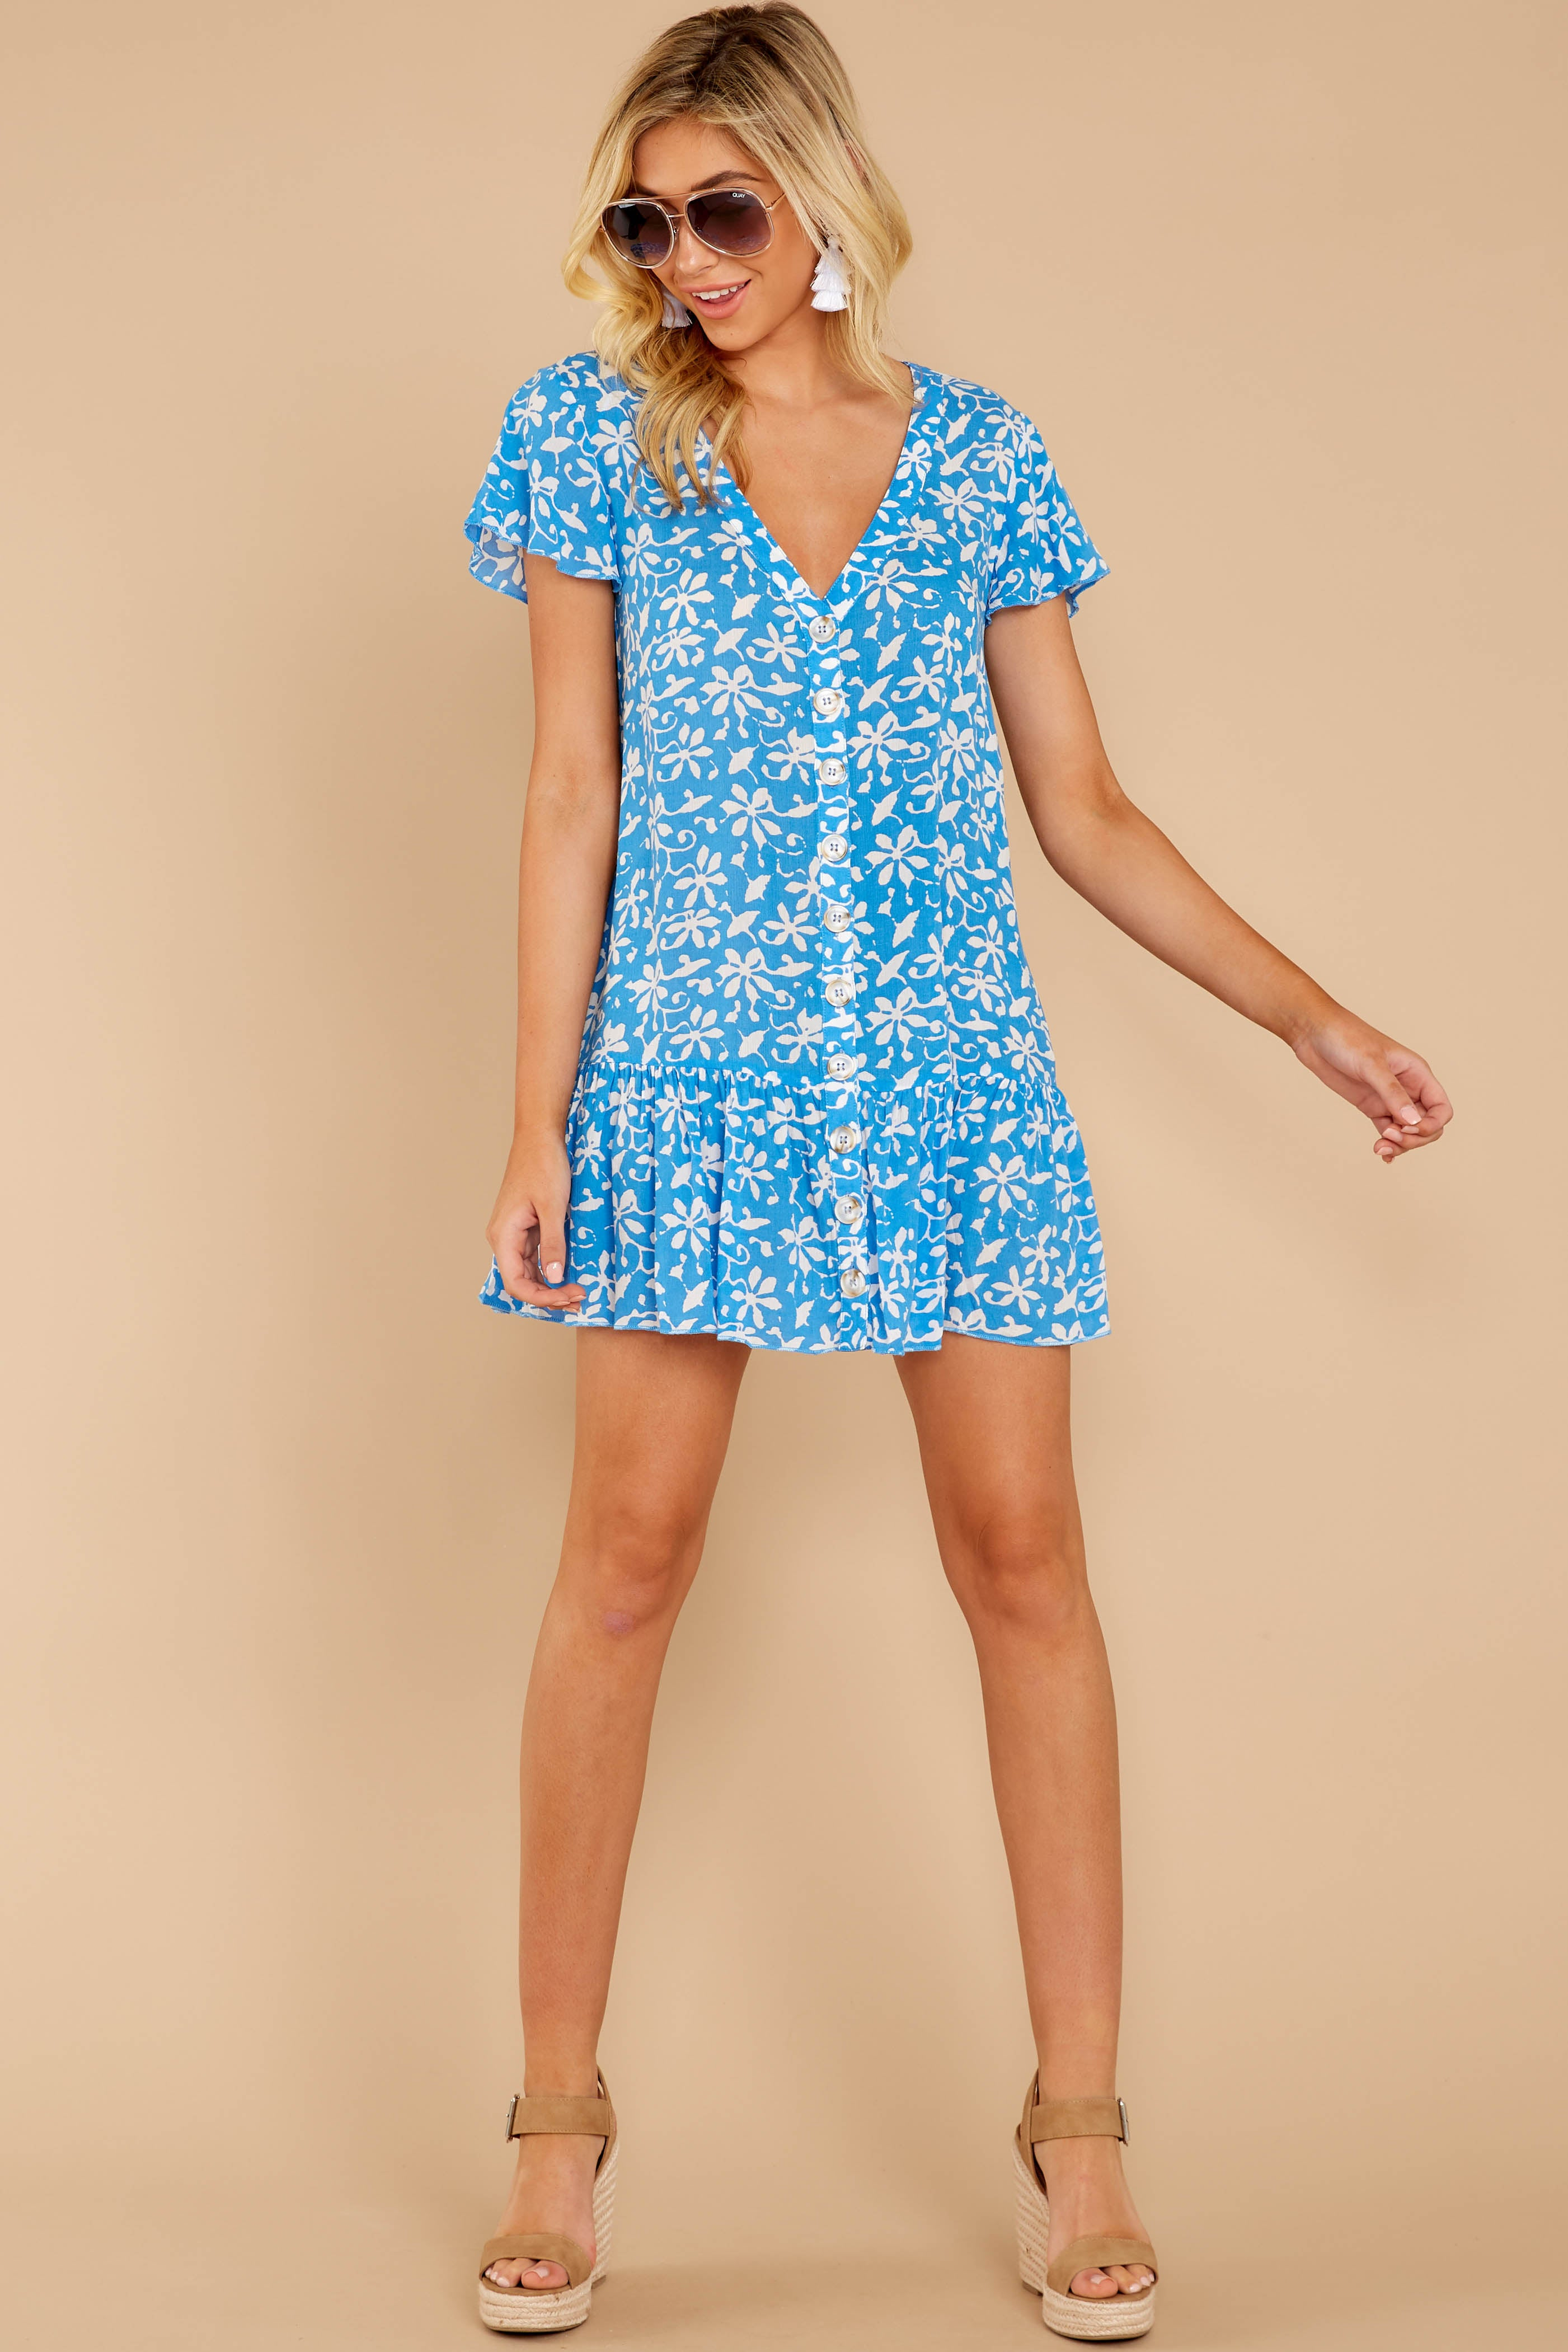 2 Sweeter By The Hour Bright Blue Print Dress at reddress.com